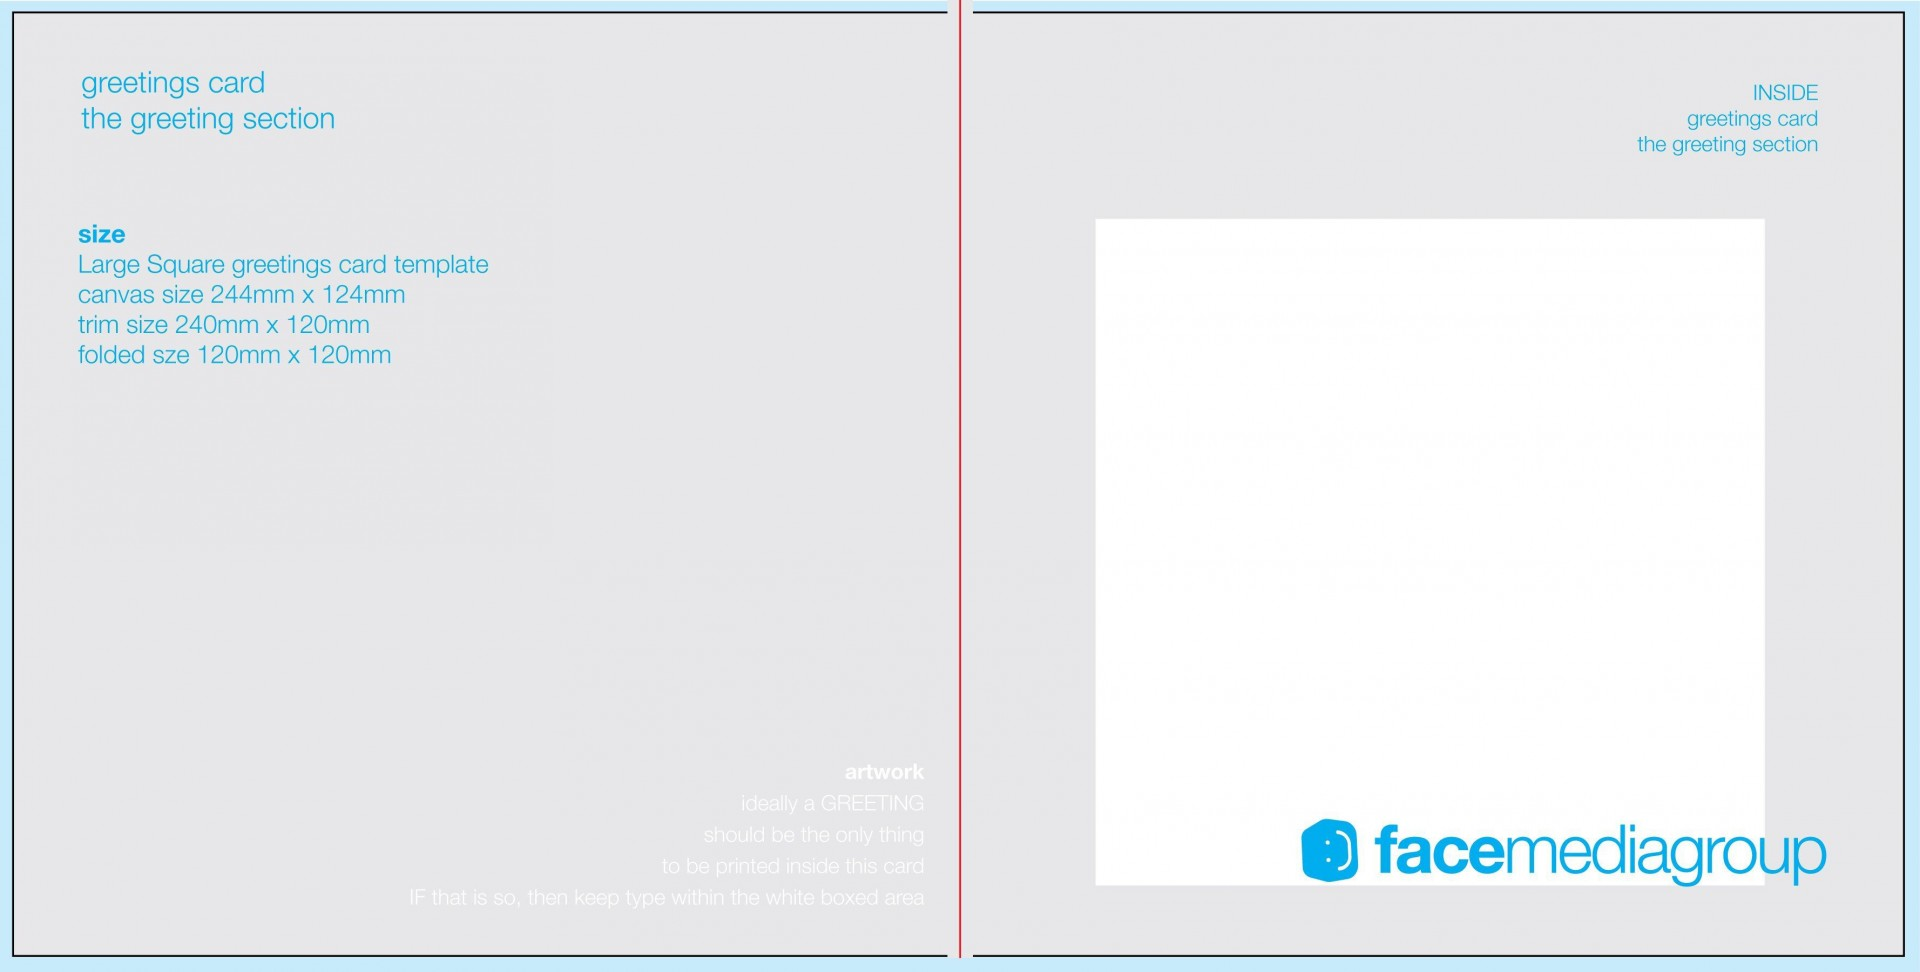 005 Unforgettable Microsoft Word Greeting Card Template Inspiration  2003 Birthday Download1920